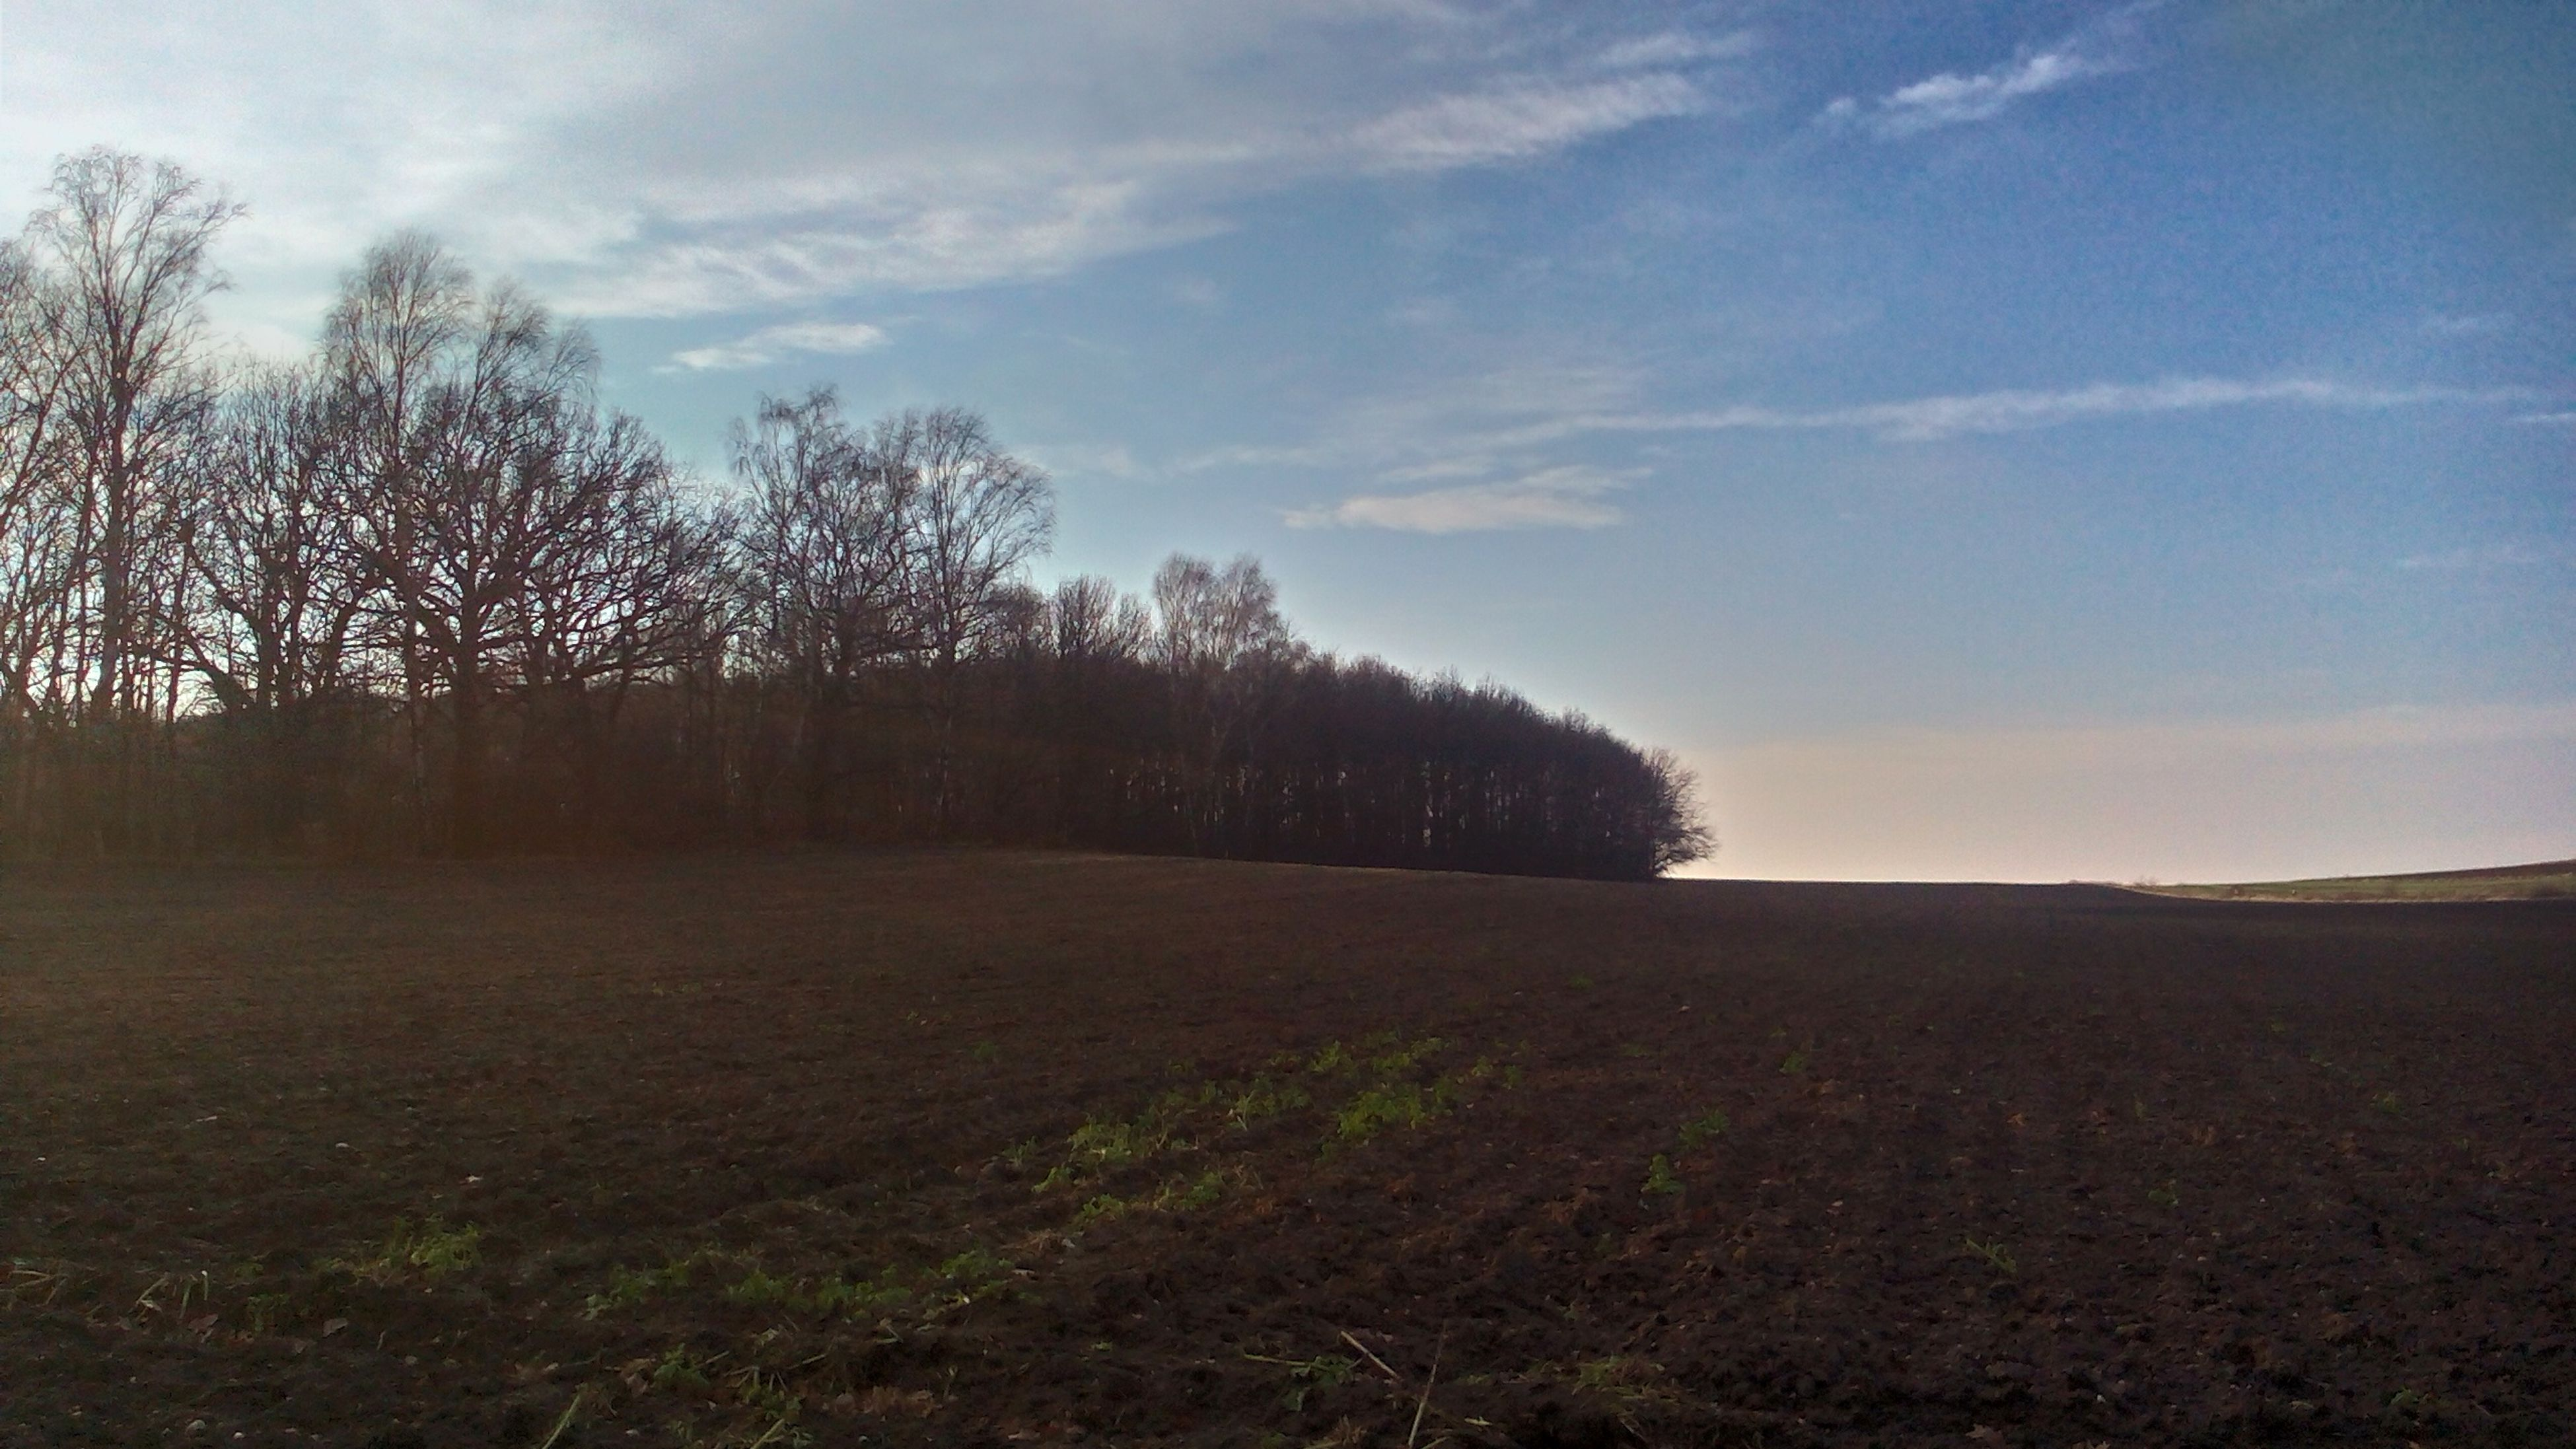 tree, sky, landscape, tranquil scene, tranquility, field, scenics, nature, beauty in nature, cloud - sky, cloud, non-urban scene, rural scene, growth, grass, silhouette, remote, solitude, outdoors, no people